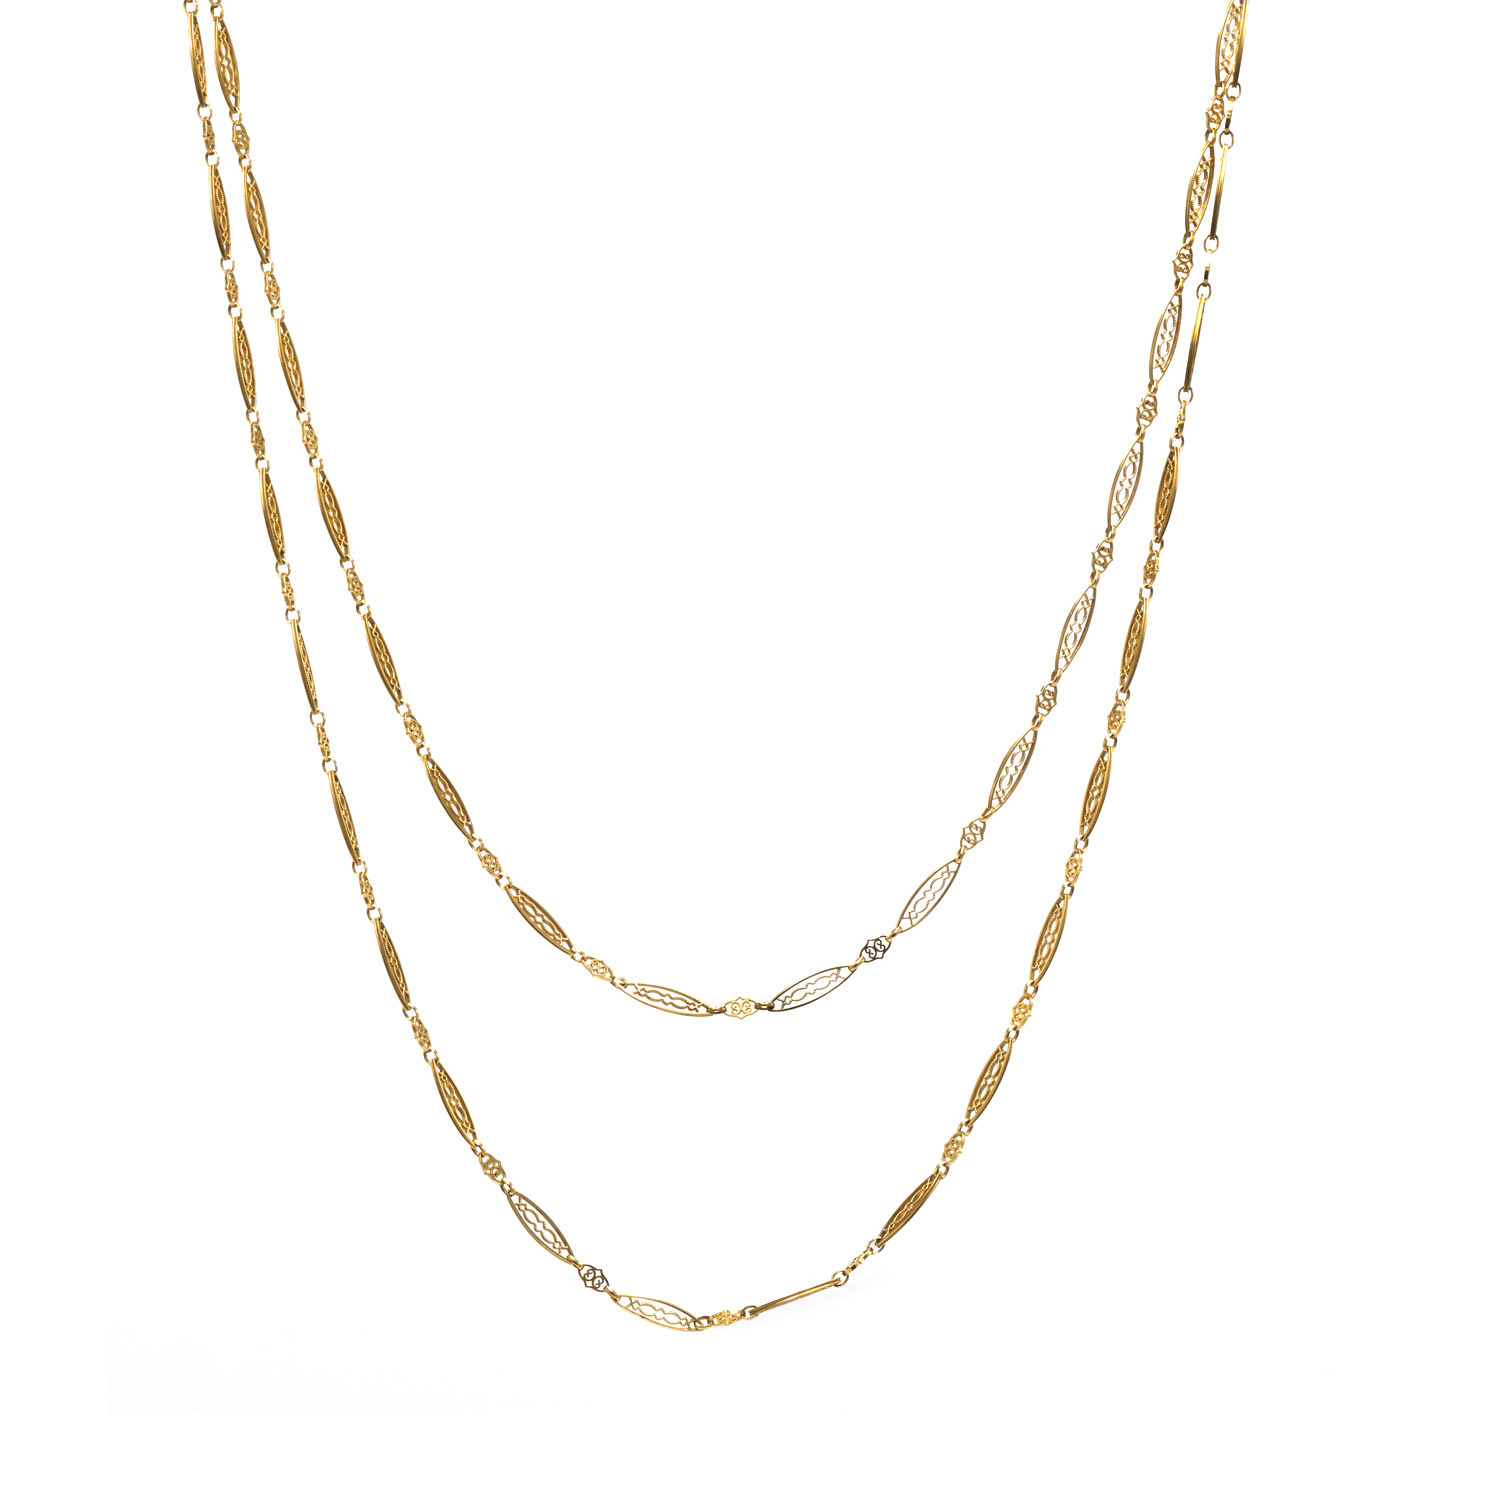 Antique French 18K Yellow Gold Filigree Chain Style N-34801-FL-0-0